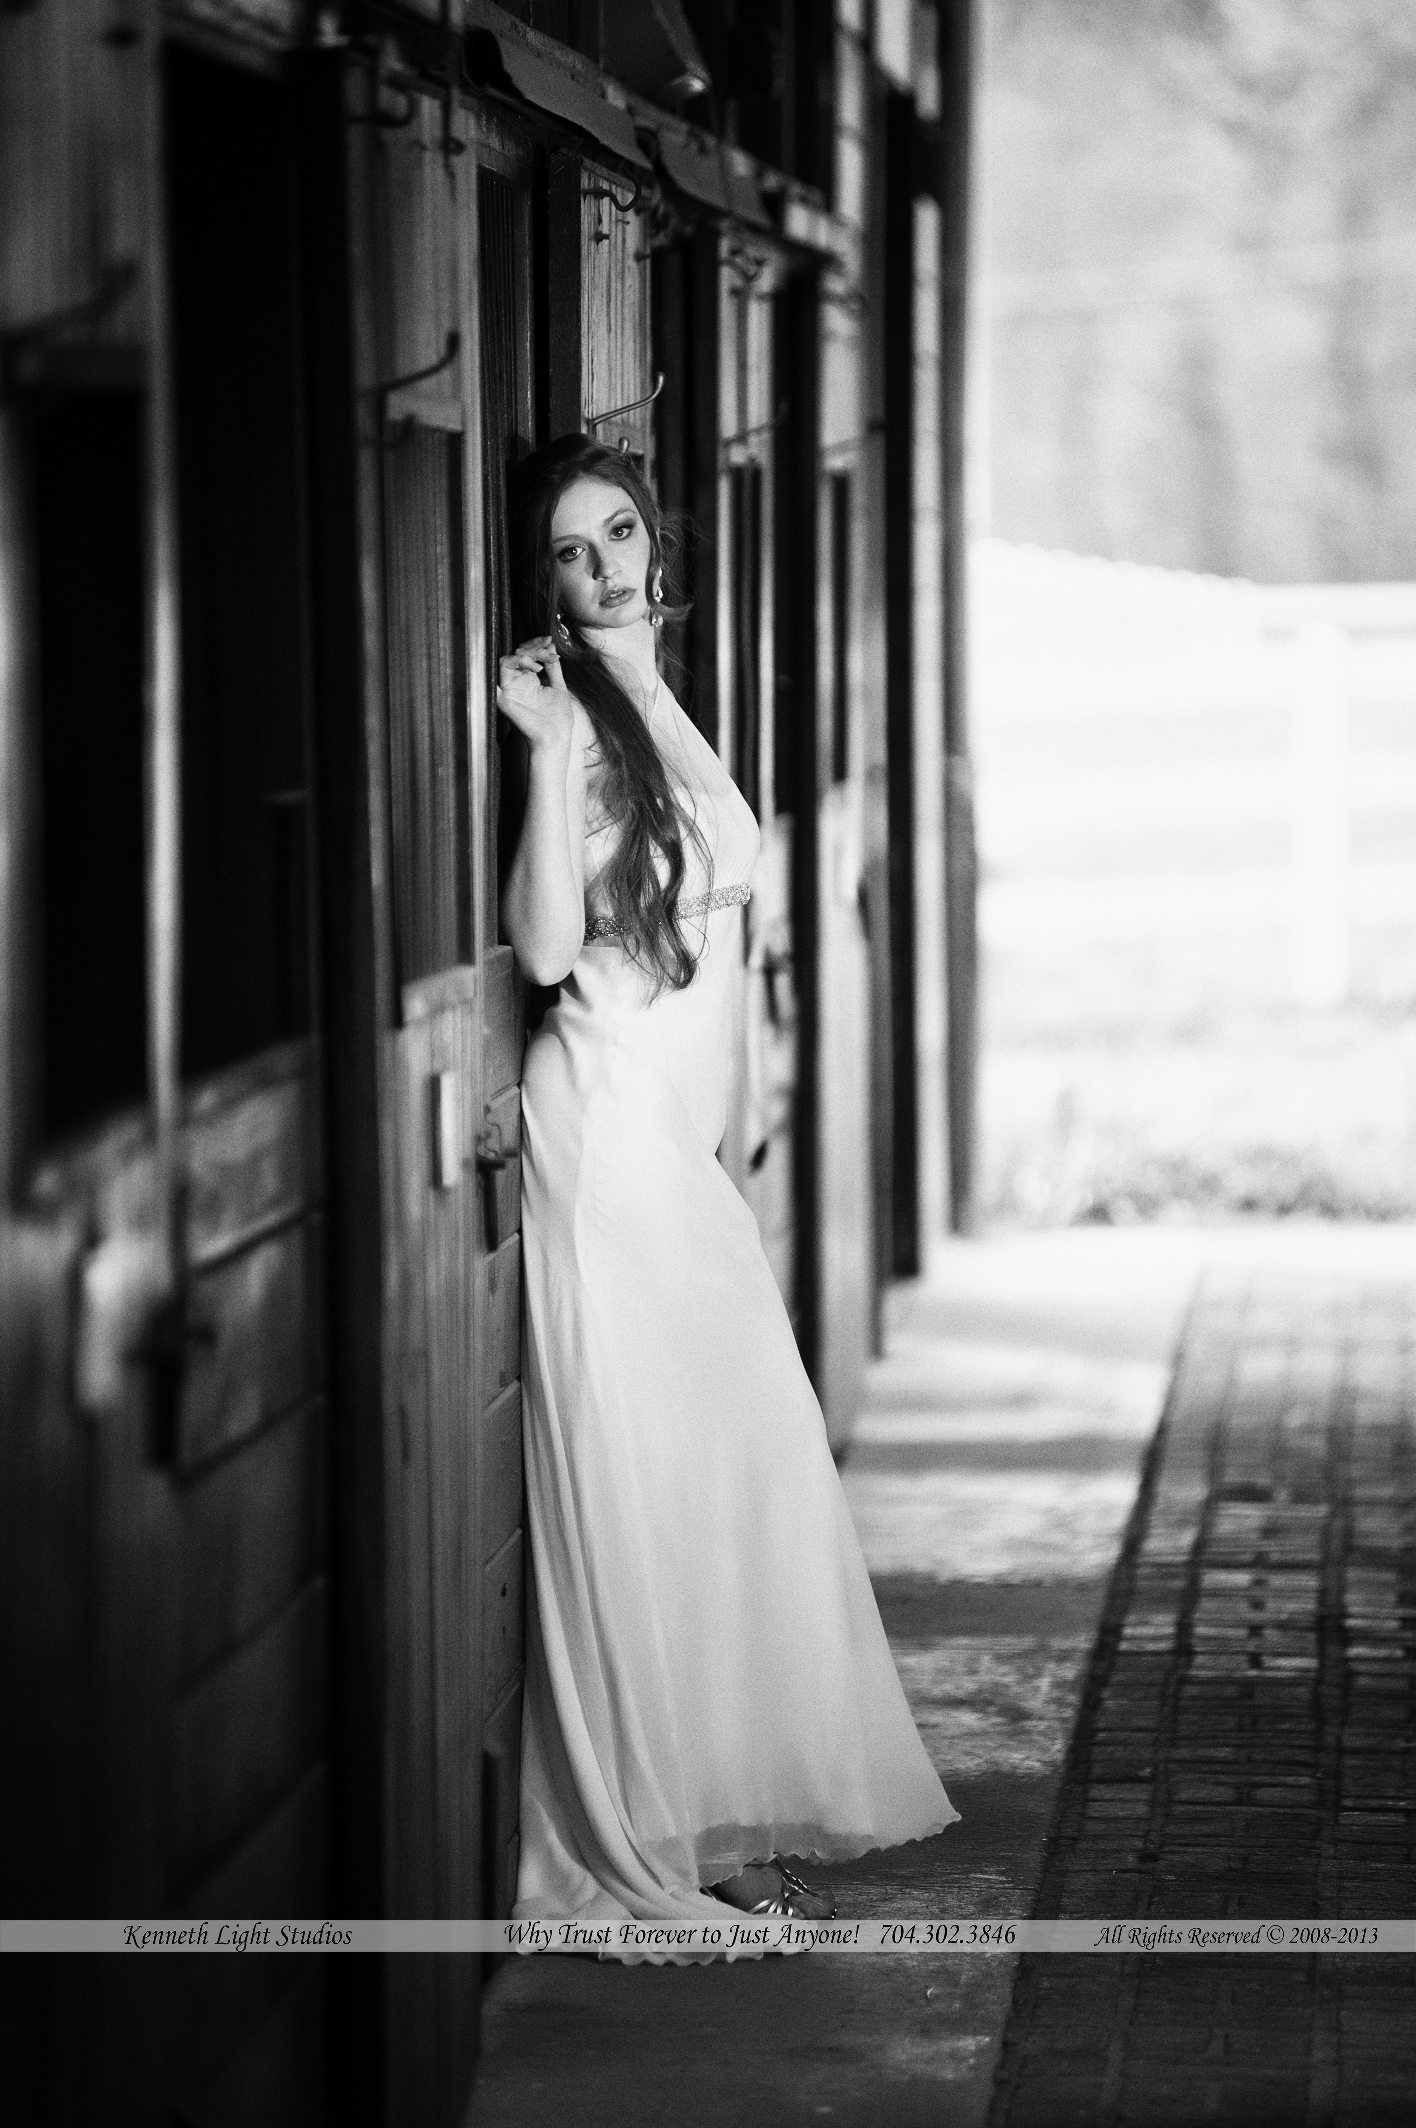 Bridal Dress in Barn, by Kenneth Light studios